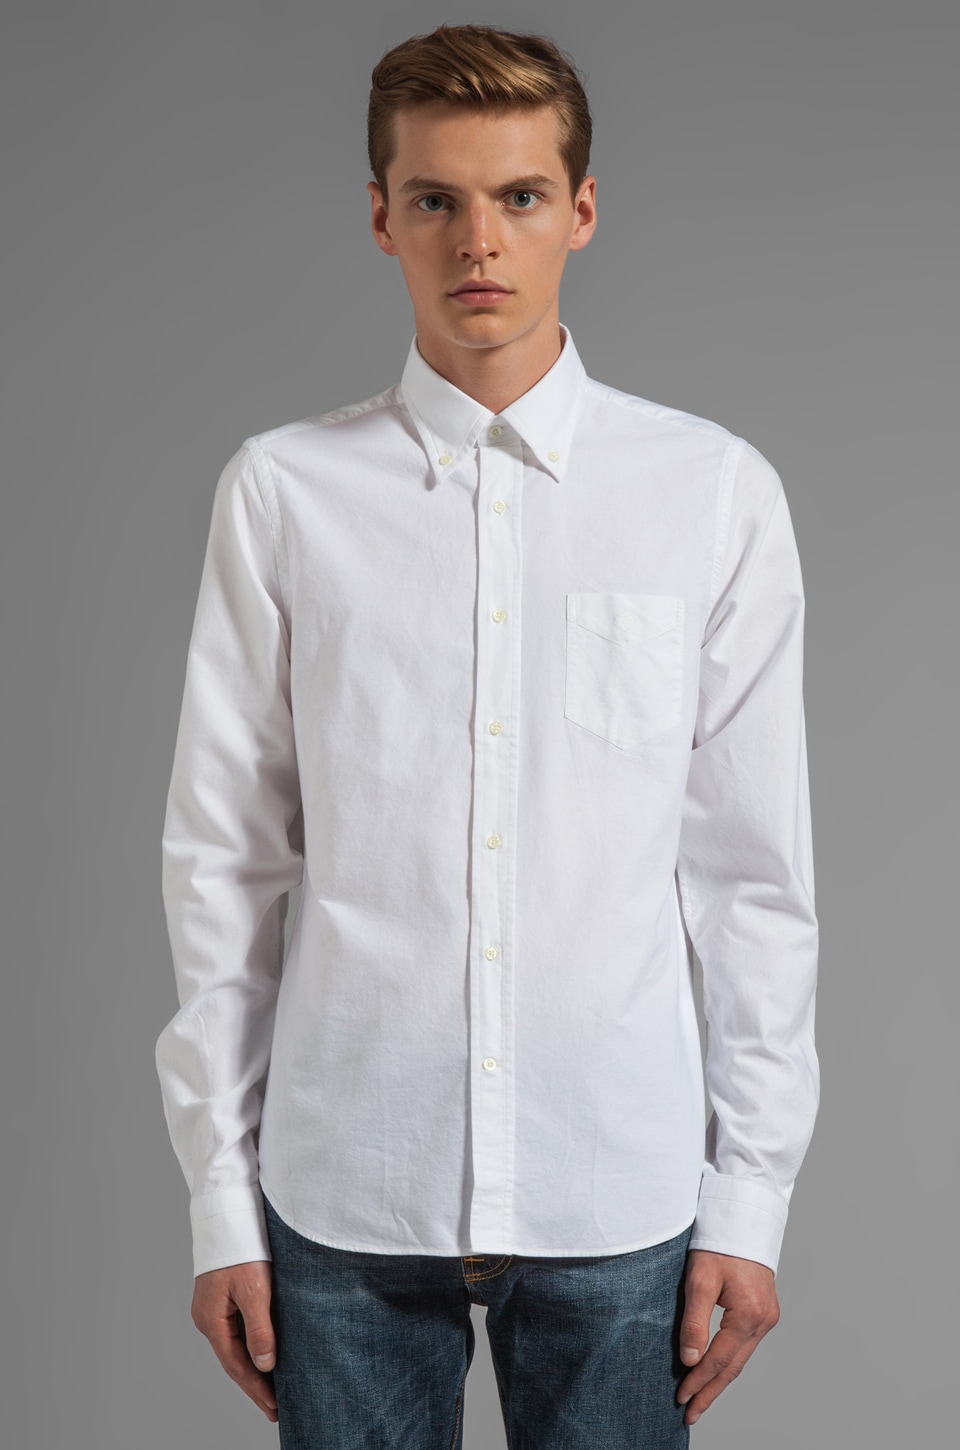 GANT Rugger Kick Ass Oxford in White